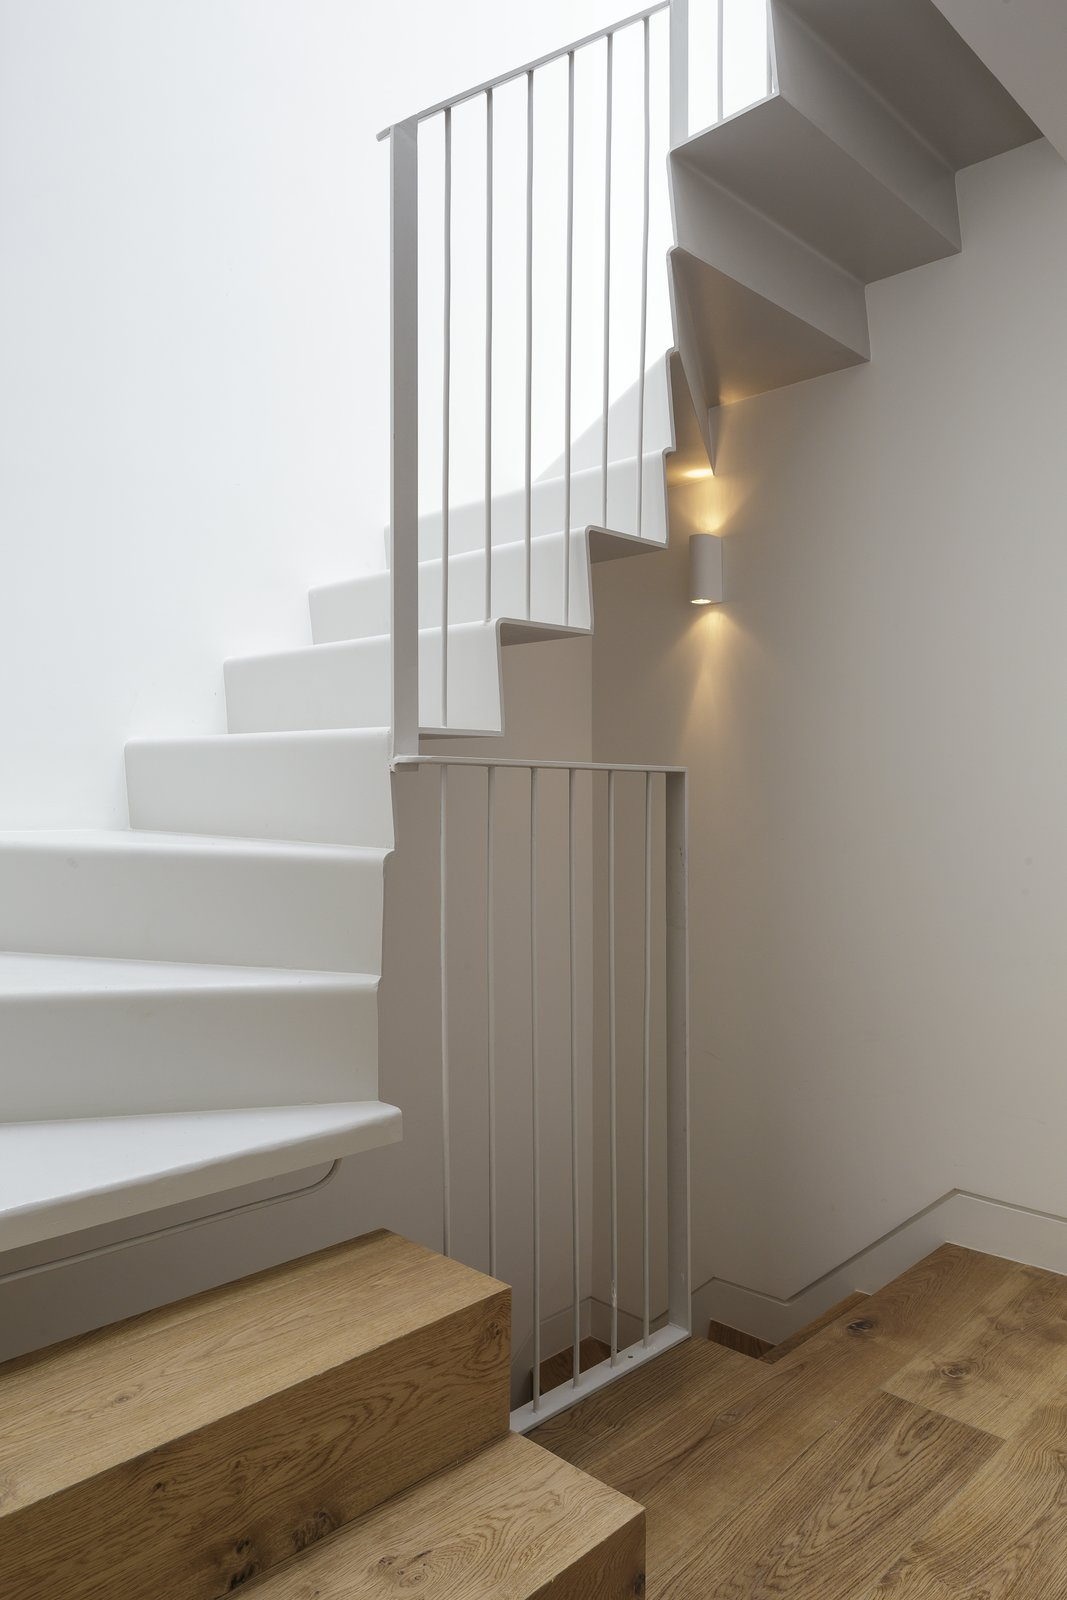 Photo 4 of 4 in Room No Roof by Tsuruta Architects